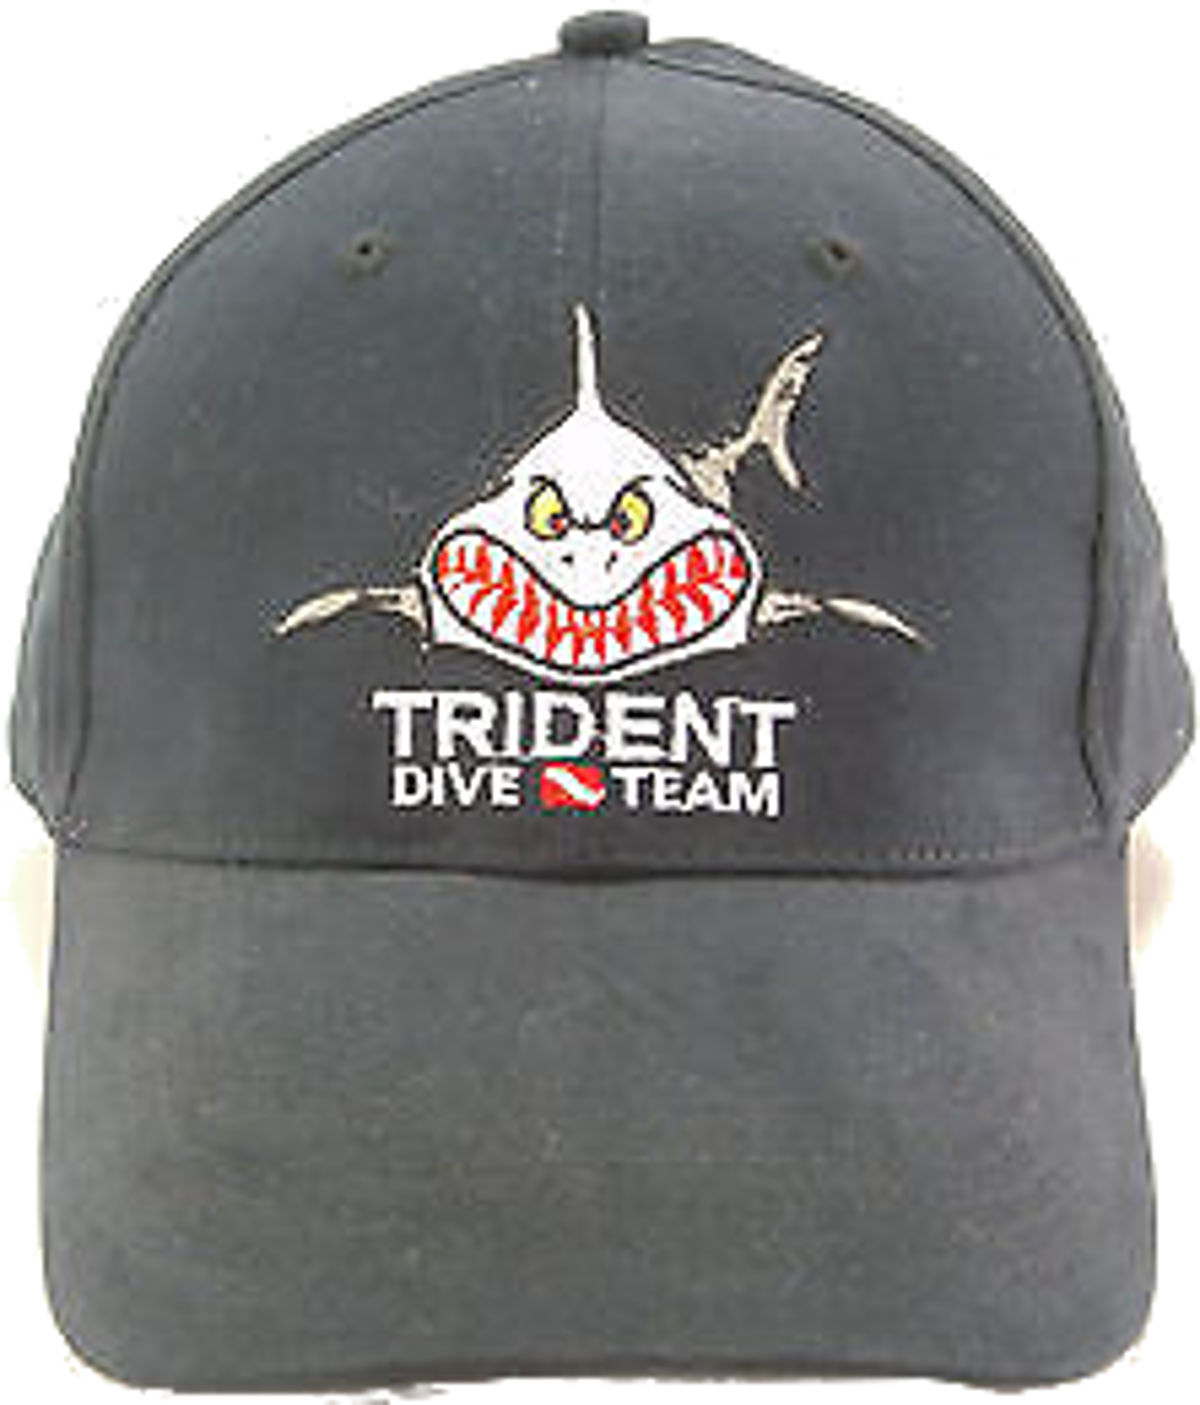 Trident Dive Team Black Baseball Cap